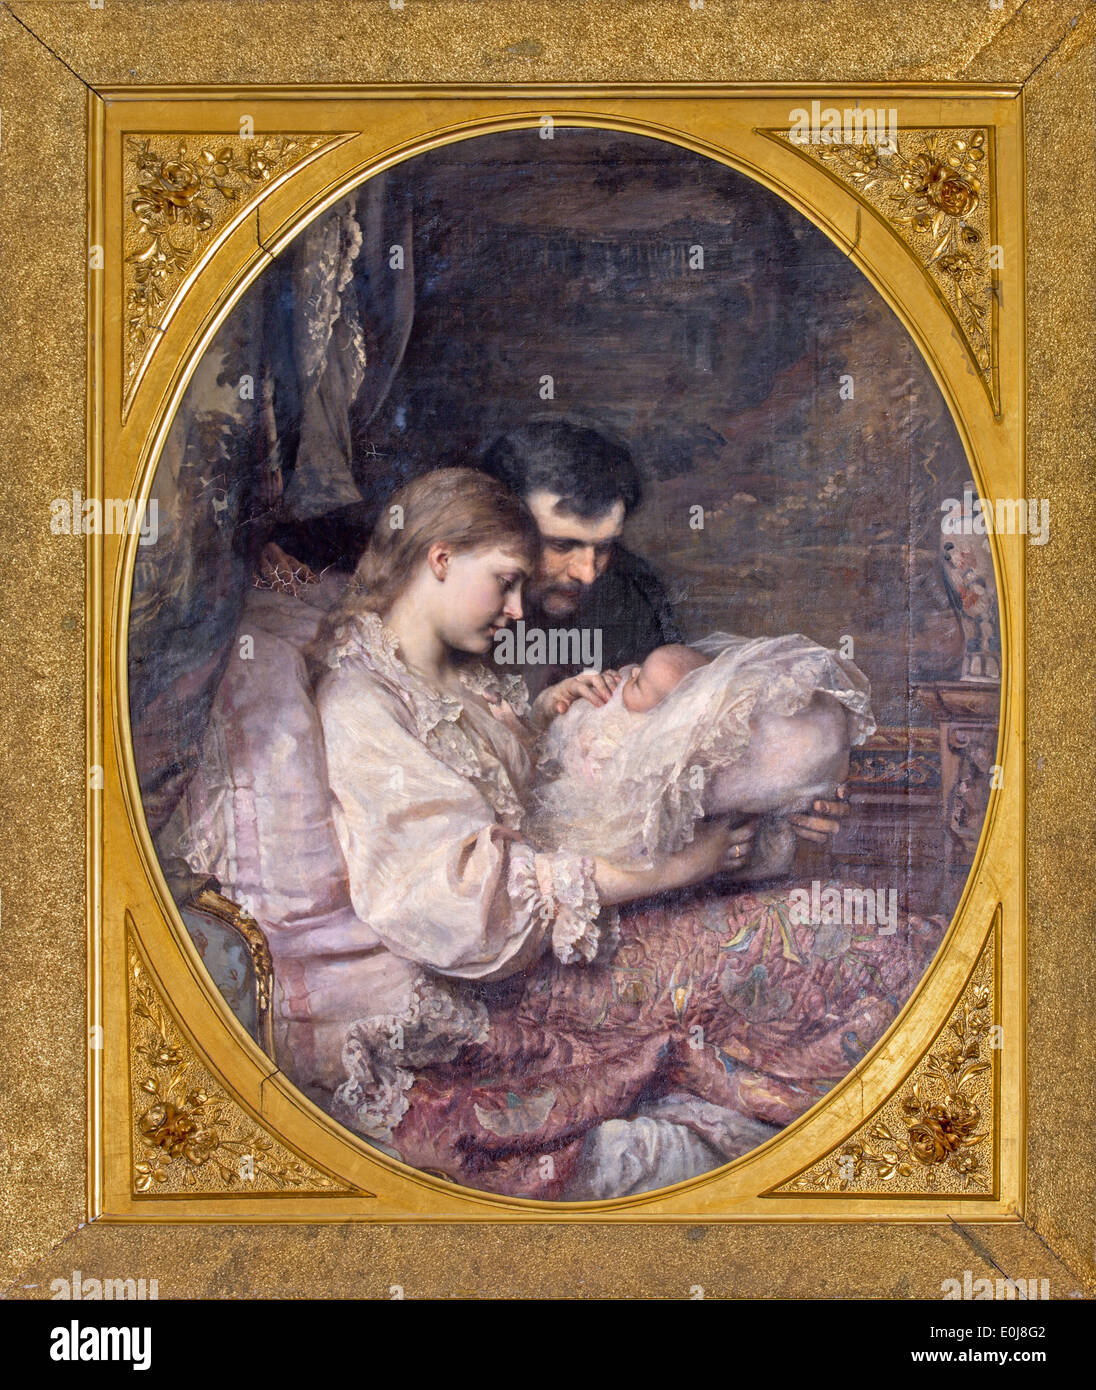 'The Family's lack' by Leopold Horowitz (1885) in Bulgarian saloon in palace Saint Anton. - Stock Image